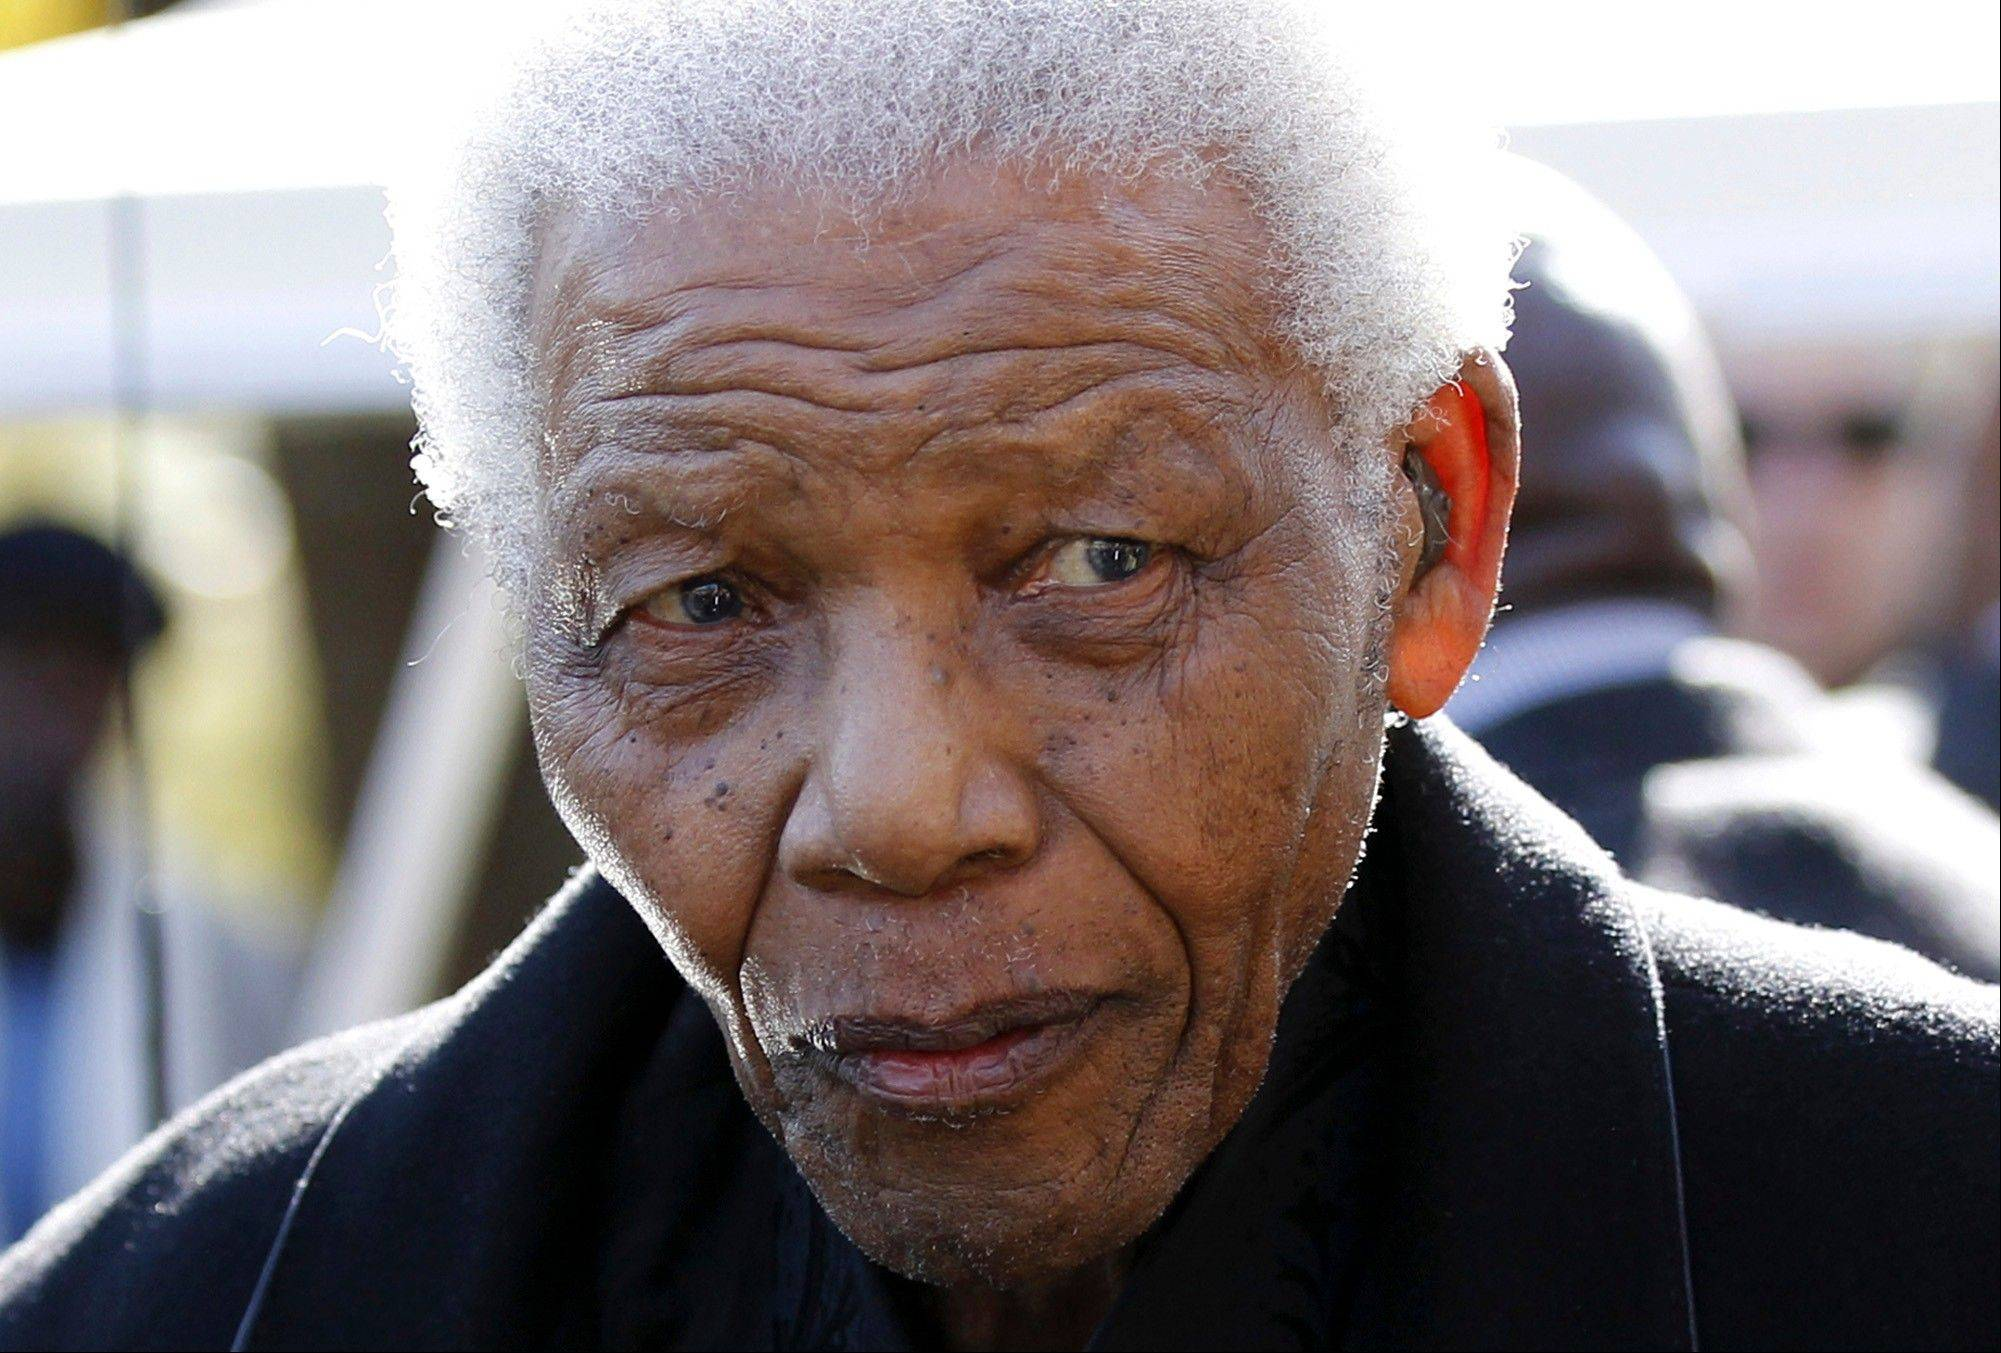 In this June 17, 2010, file photo, former South African President Nelson Mandela leaves the chapel after attending the funeral of his great-granddaughter Zenani Mandela in Johannesburg, South Africa. The South African presidency says Mandela has been discharged, Saturday, April 6, 2013, from a hospital after an improvement in his condition. Officials say he was treated for pneumonia.